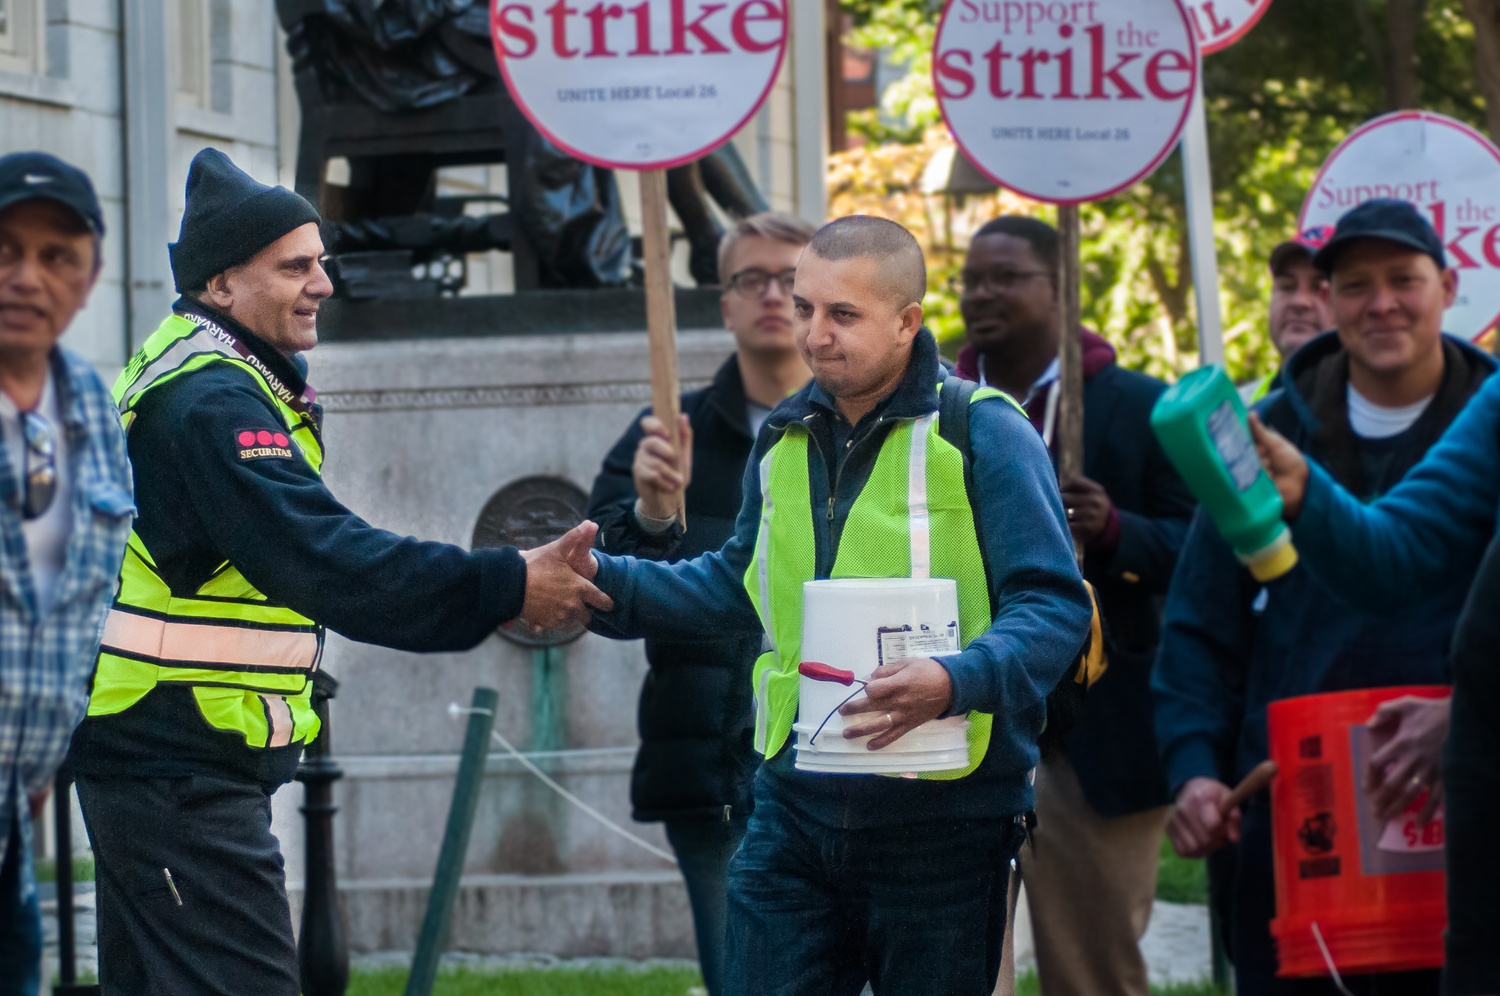 A security officer extends a handshake to one of the protestors during Wednesday morning's march through the yard. Police and security presence was especially high throughout the day.